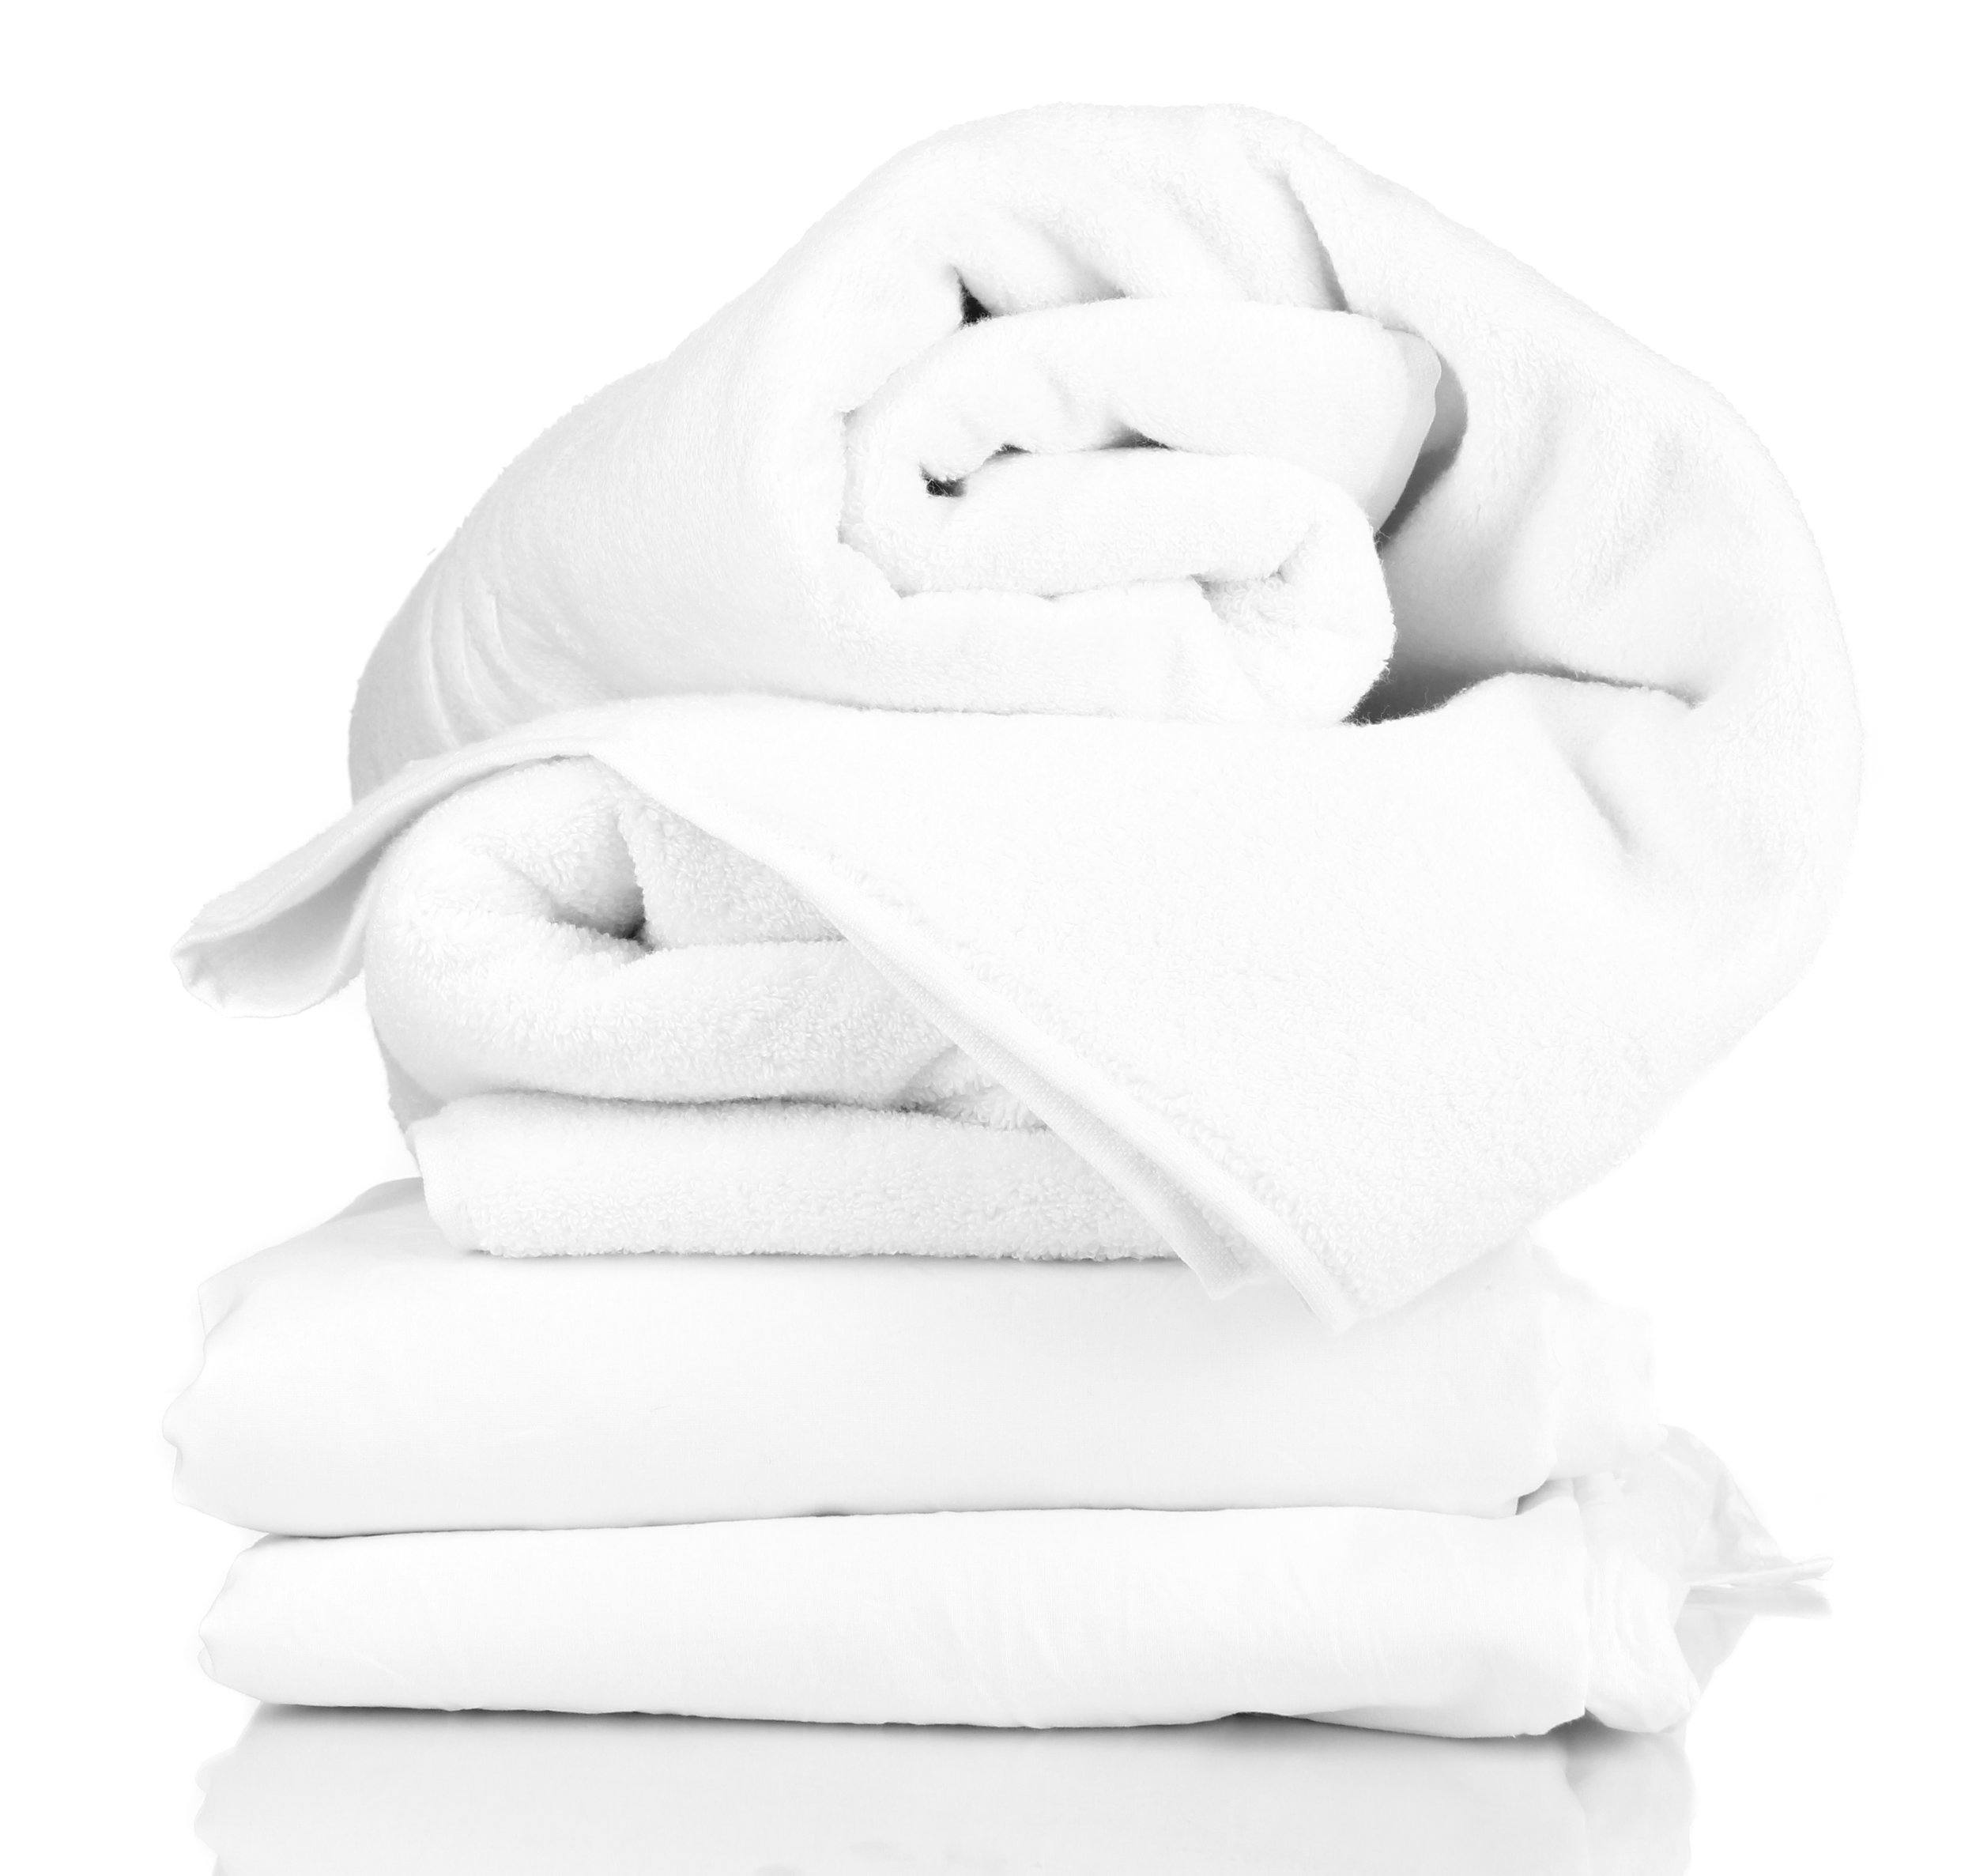 Luxurious Bed Sheet Sets